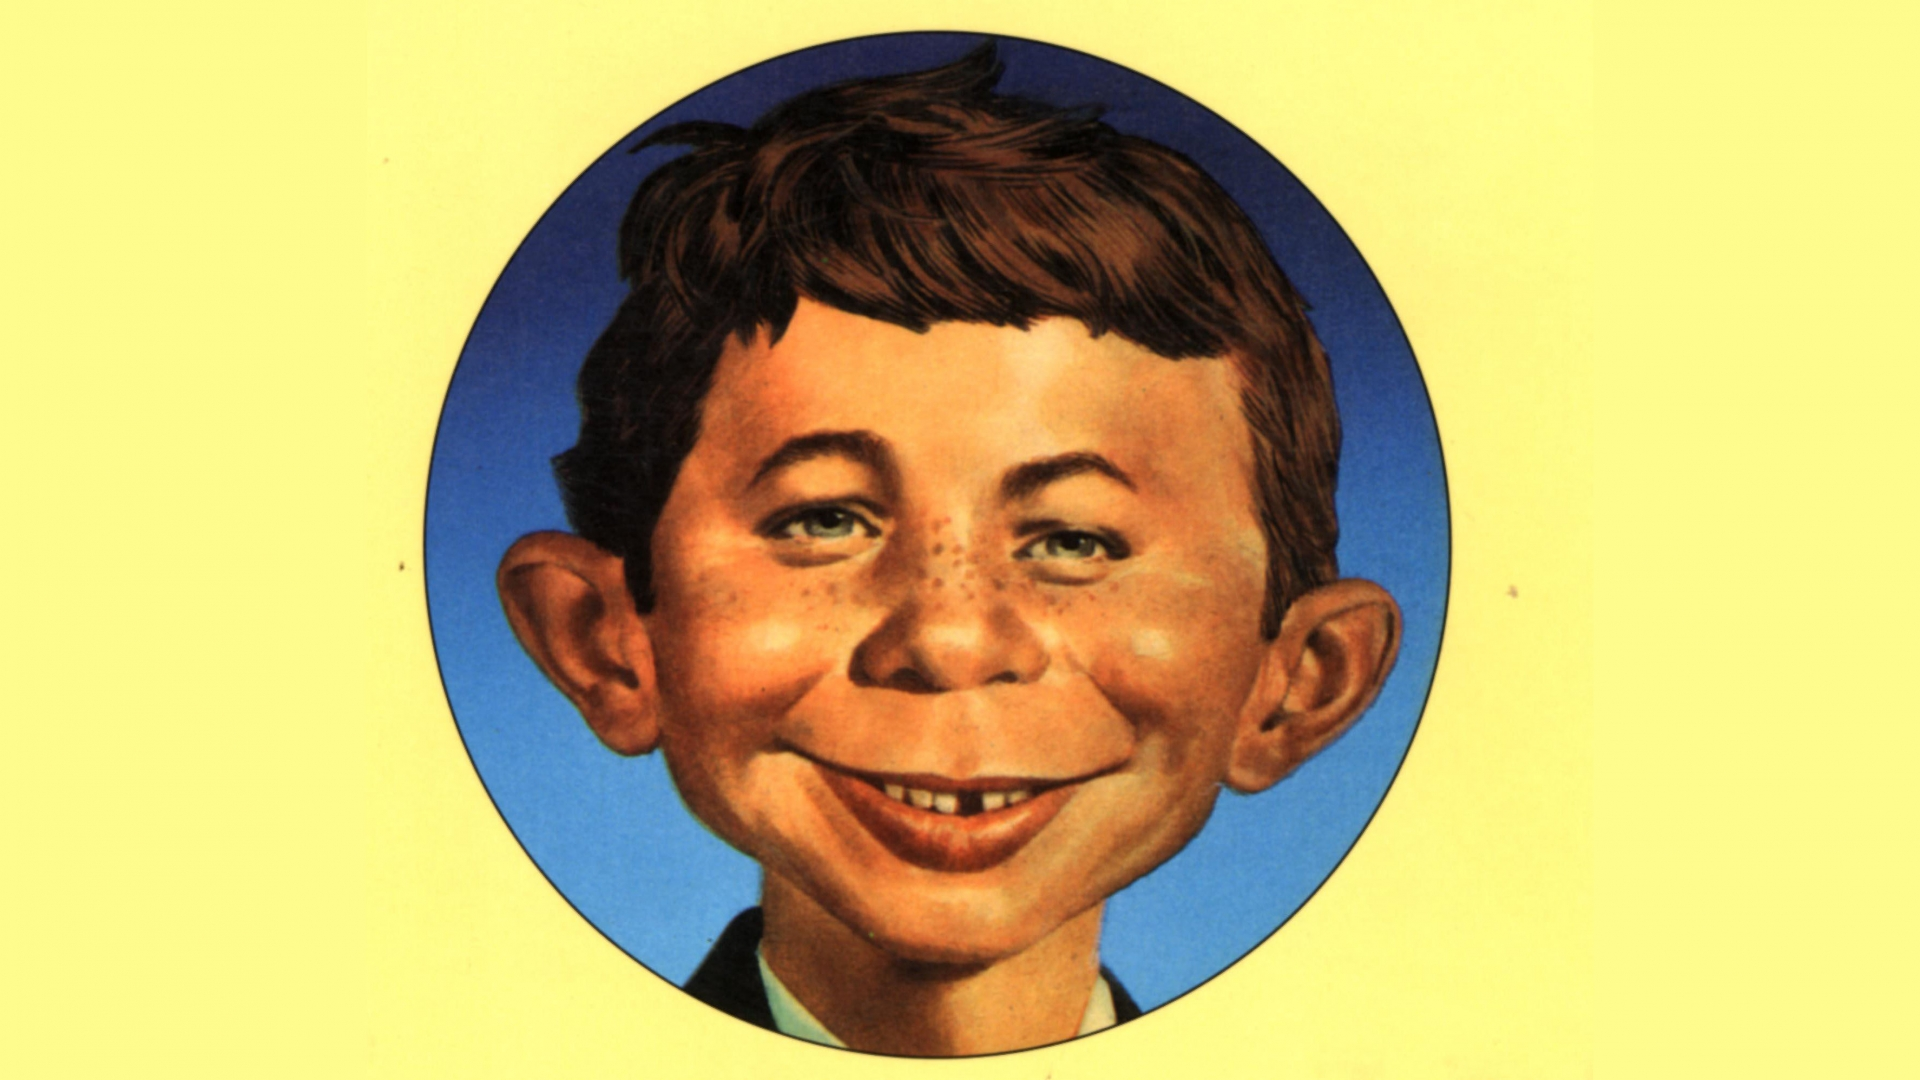 Alfred E. Neumann was the mascot of the satirical Mad magazine, popular in the 1960s. (Credit: The Advertising Archives/Alamy Stock Photo)